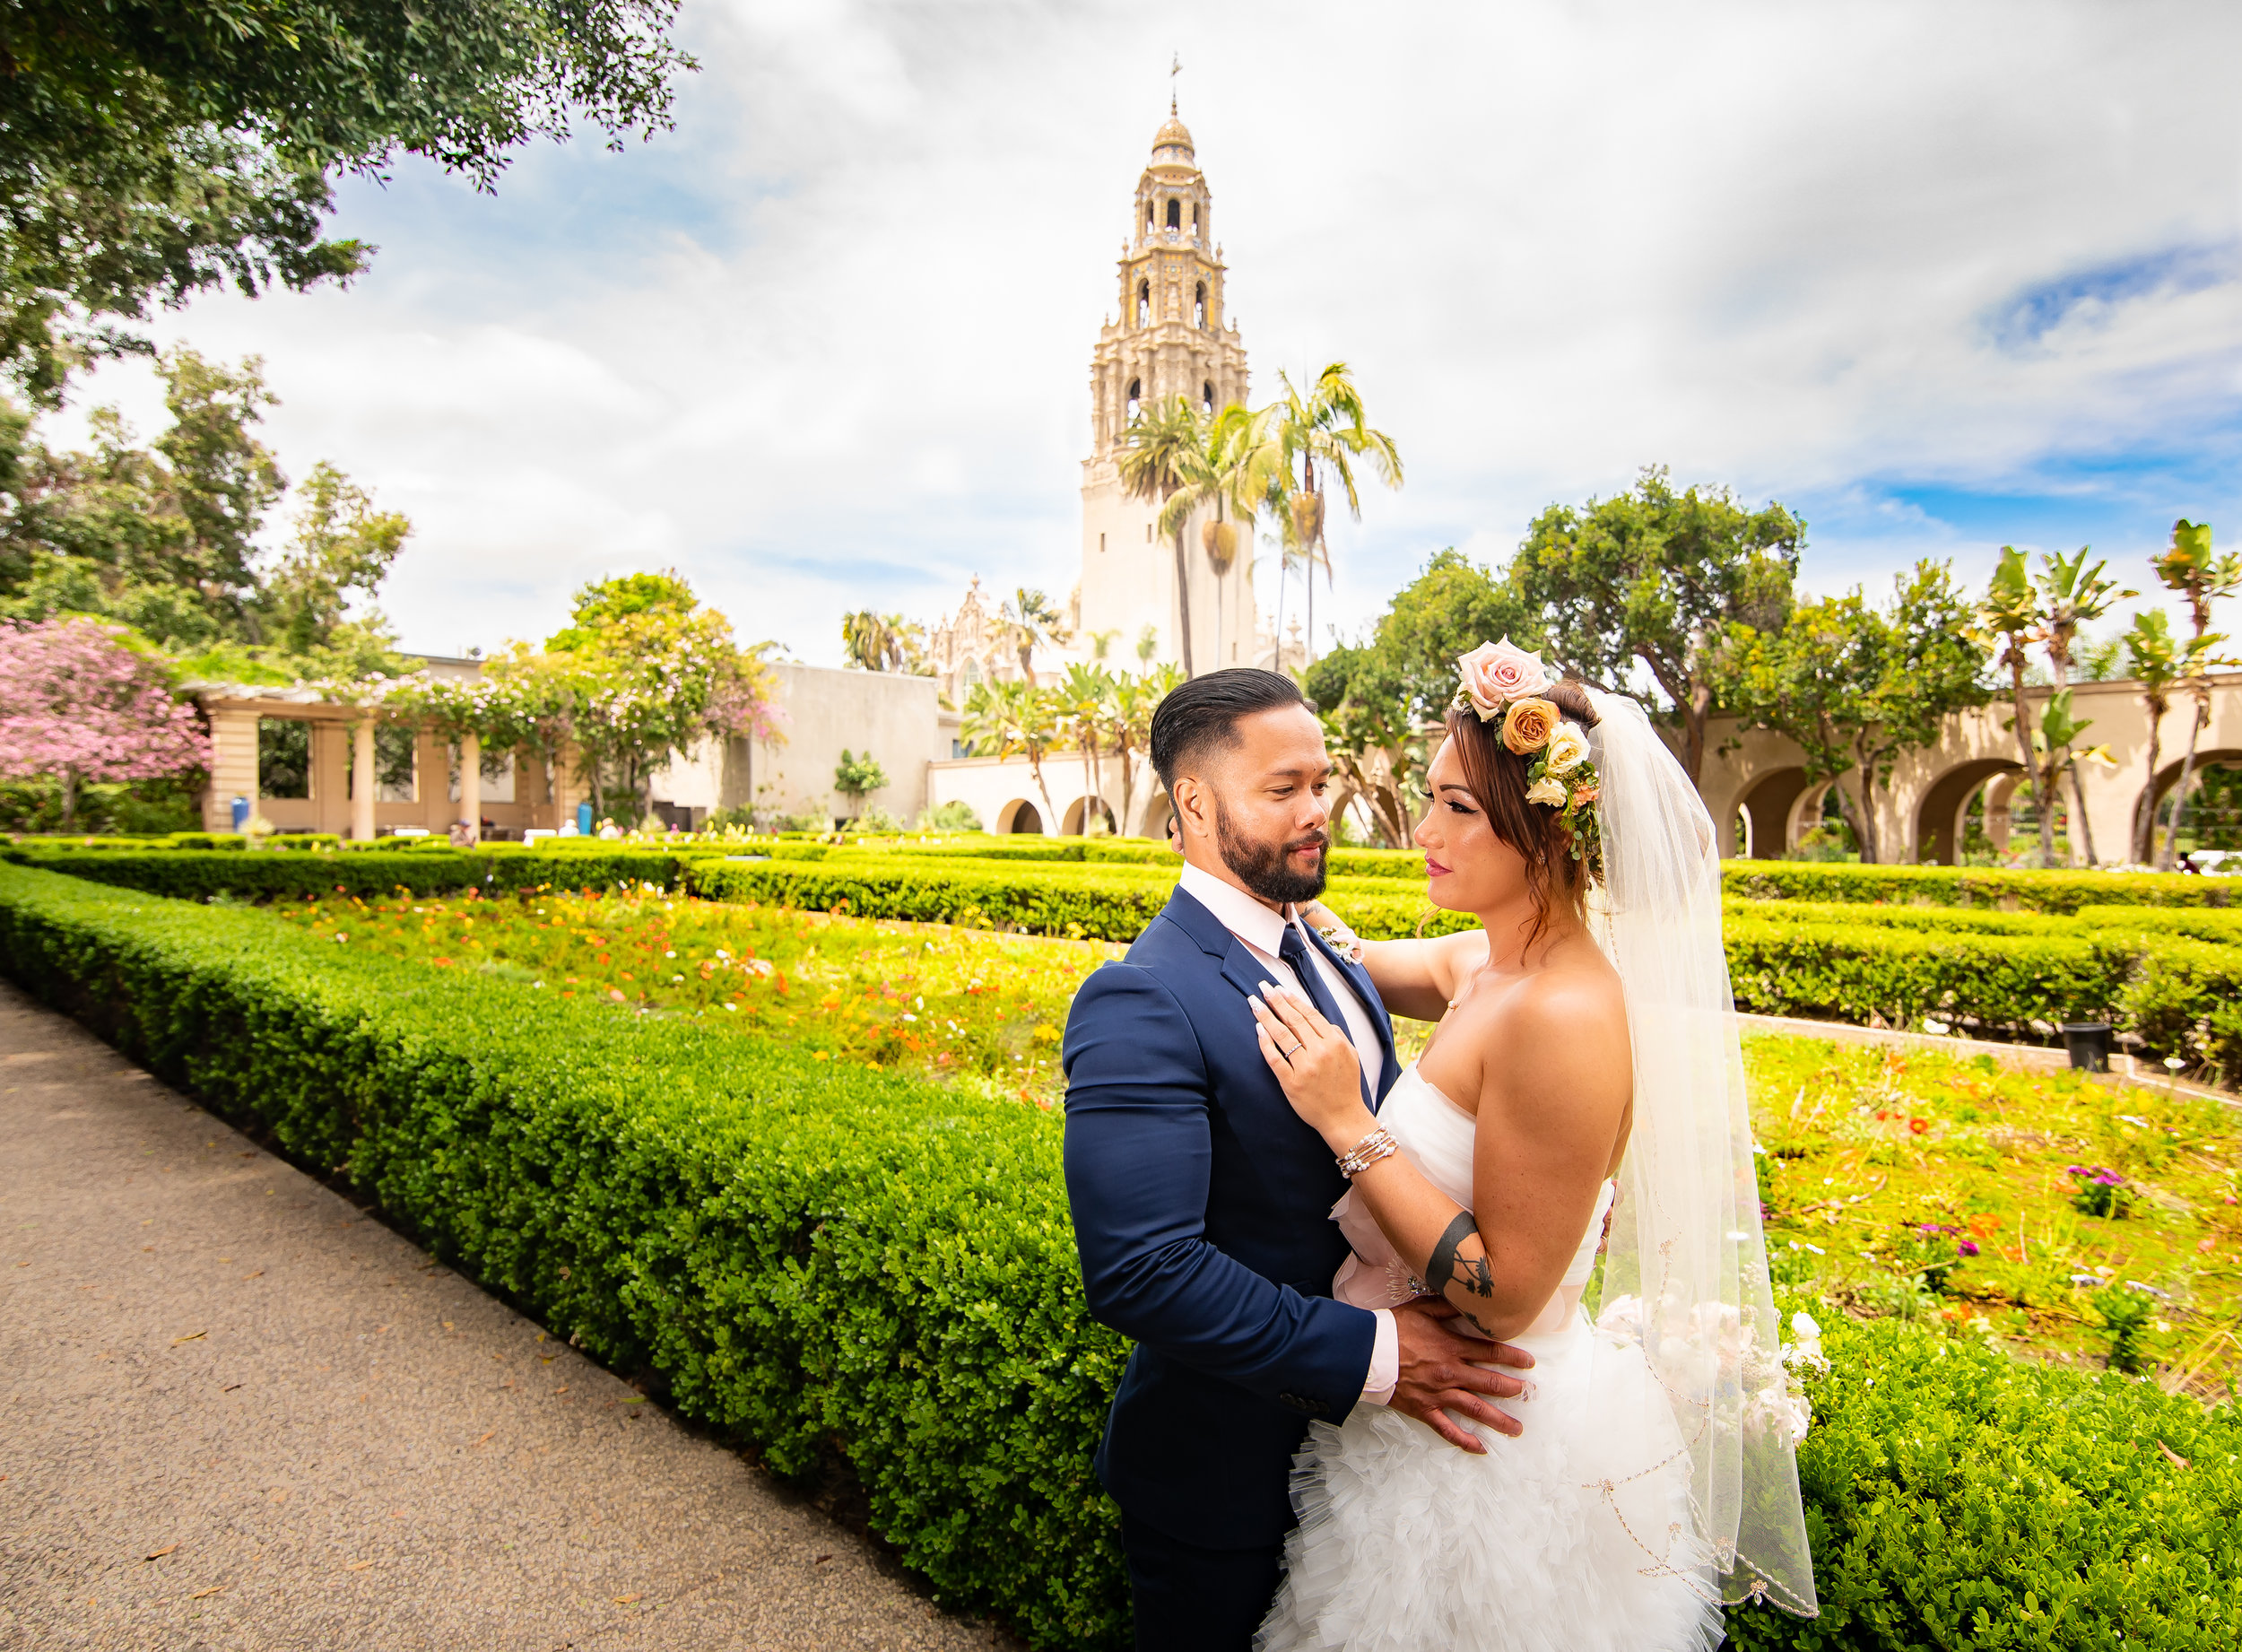 Add Balboa Park - Use for Engagement PhotosorAfter Your Wedding CeremonyIncludes:1 Hour Session + Outfit Change$120 (Normally $250)Digital Images purchased separately at $20 each (Normally $50)*Not a stand alone